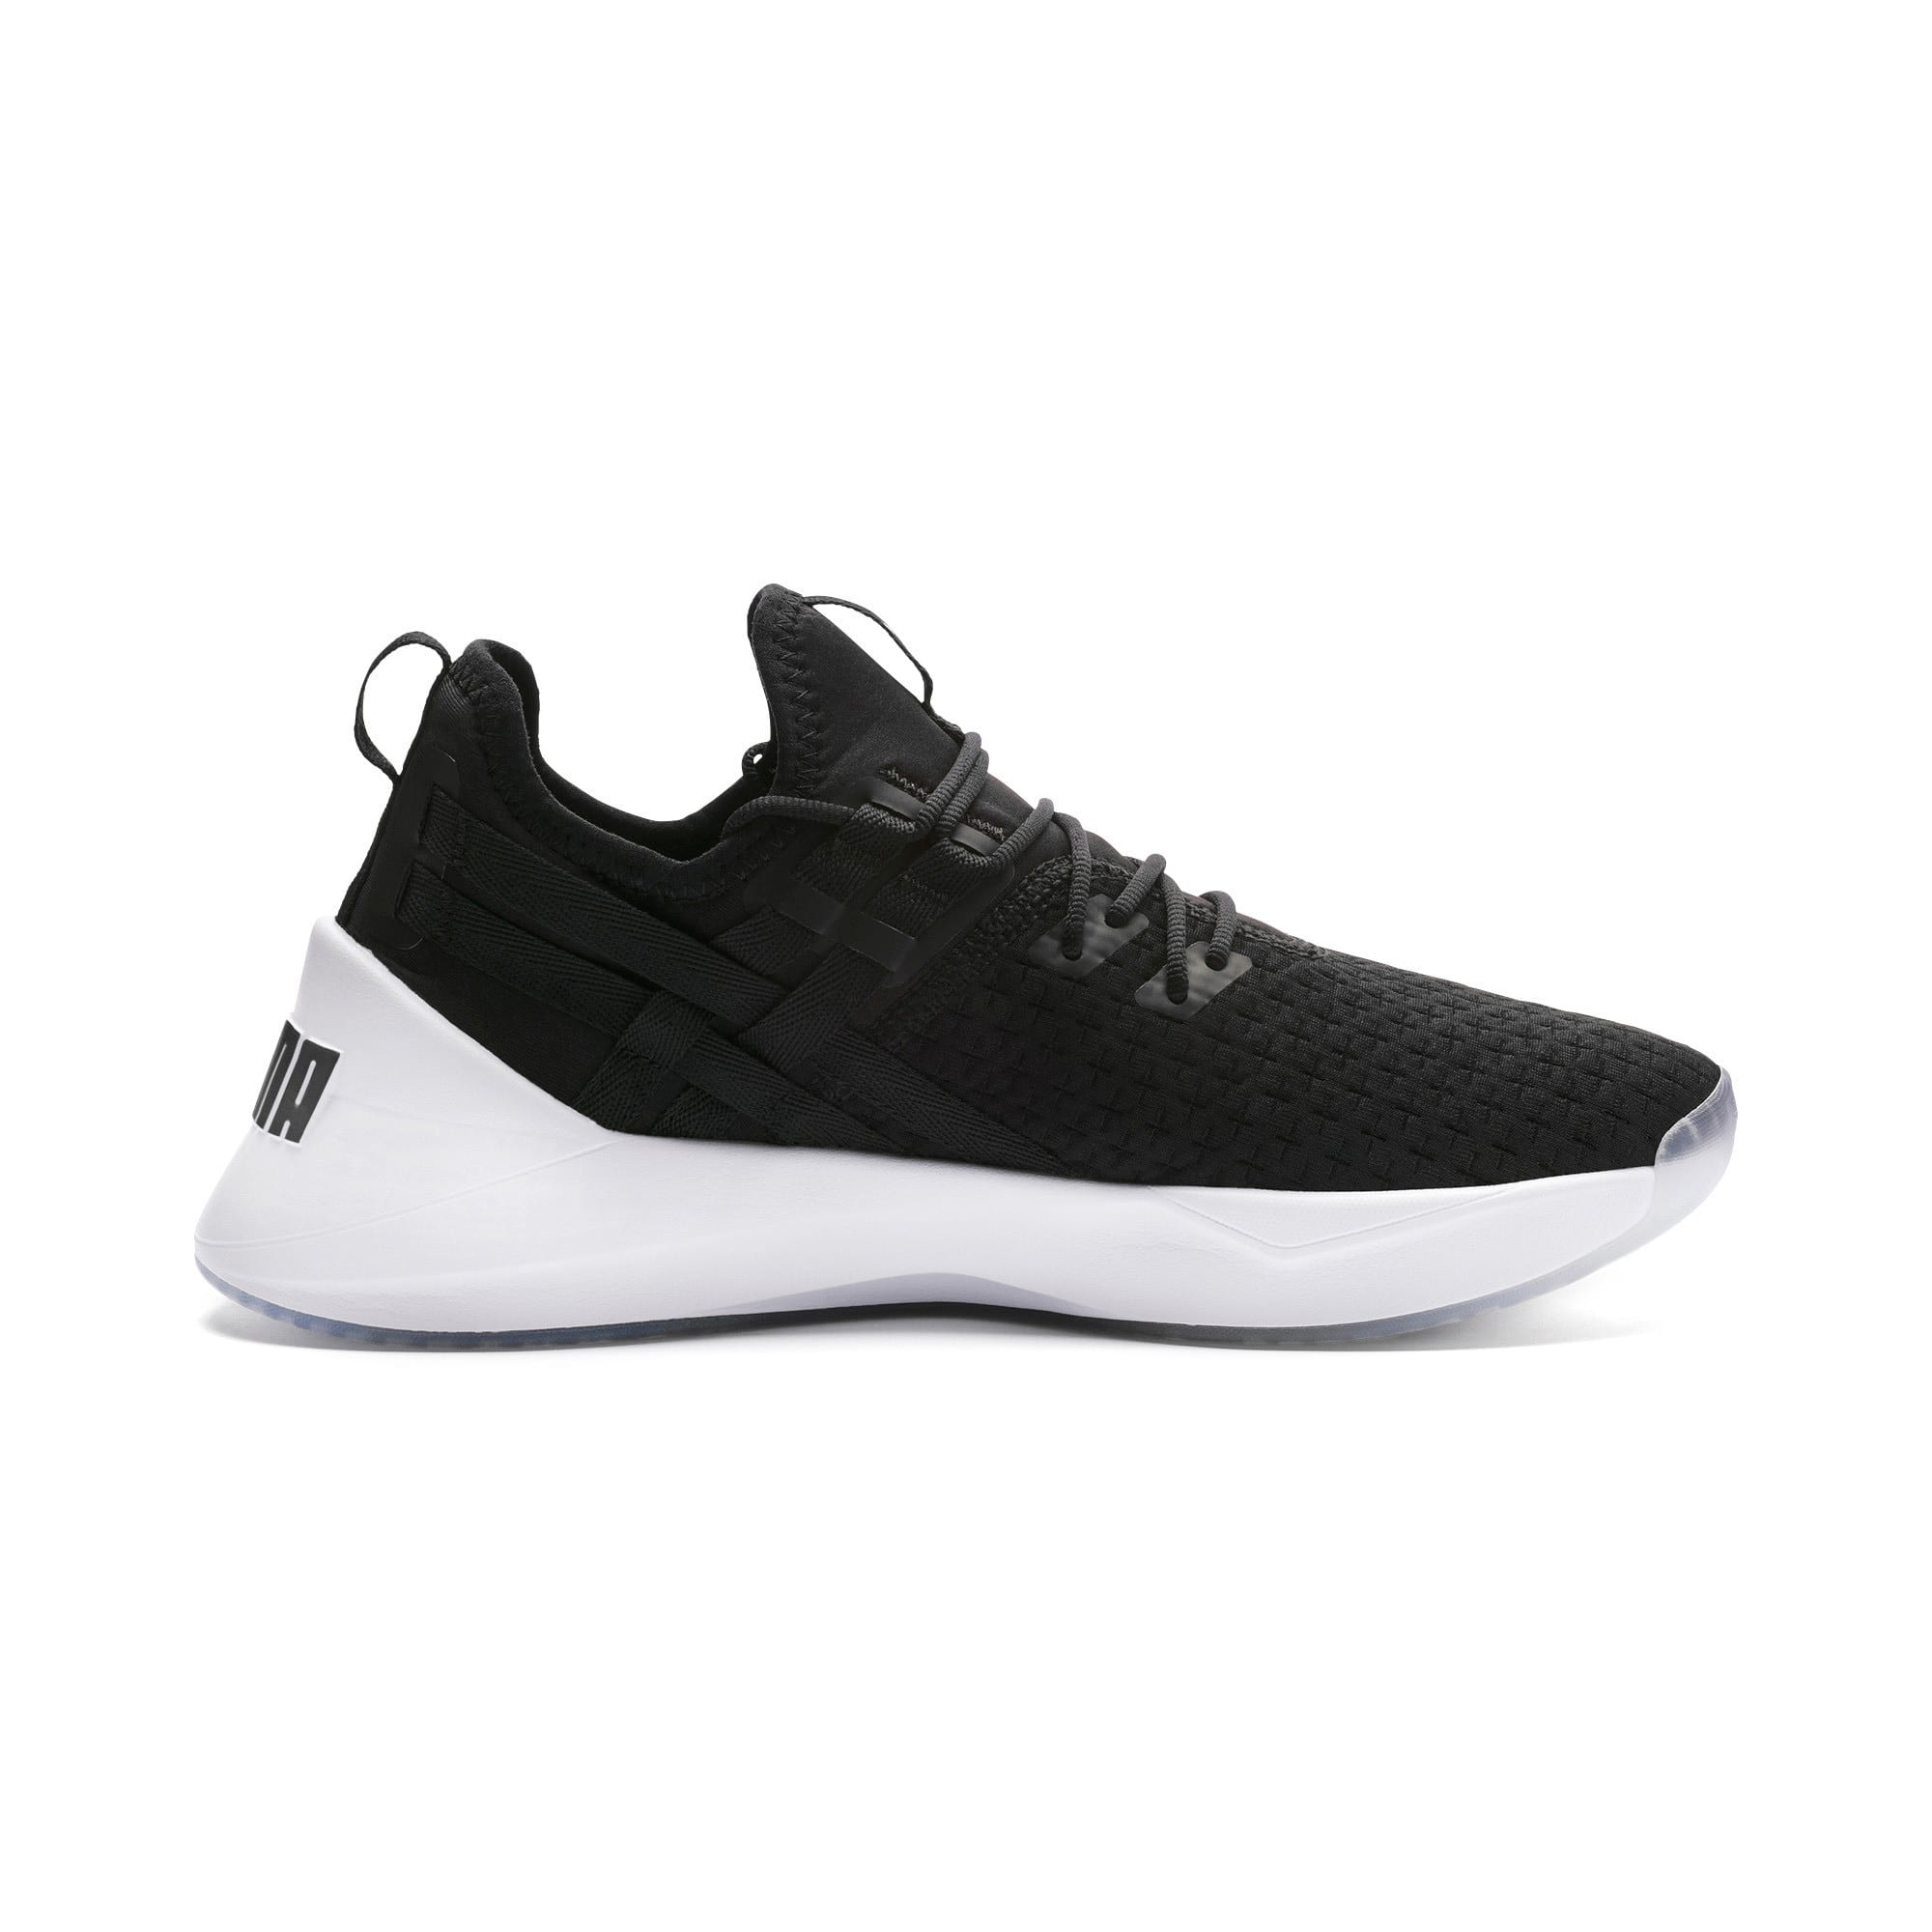 Thumbnail 5 of Jaab XT Women's Training Trainers, Puma Black-Puma White, medium